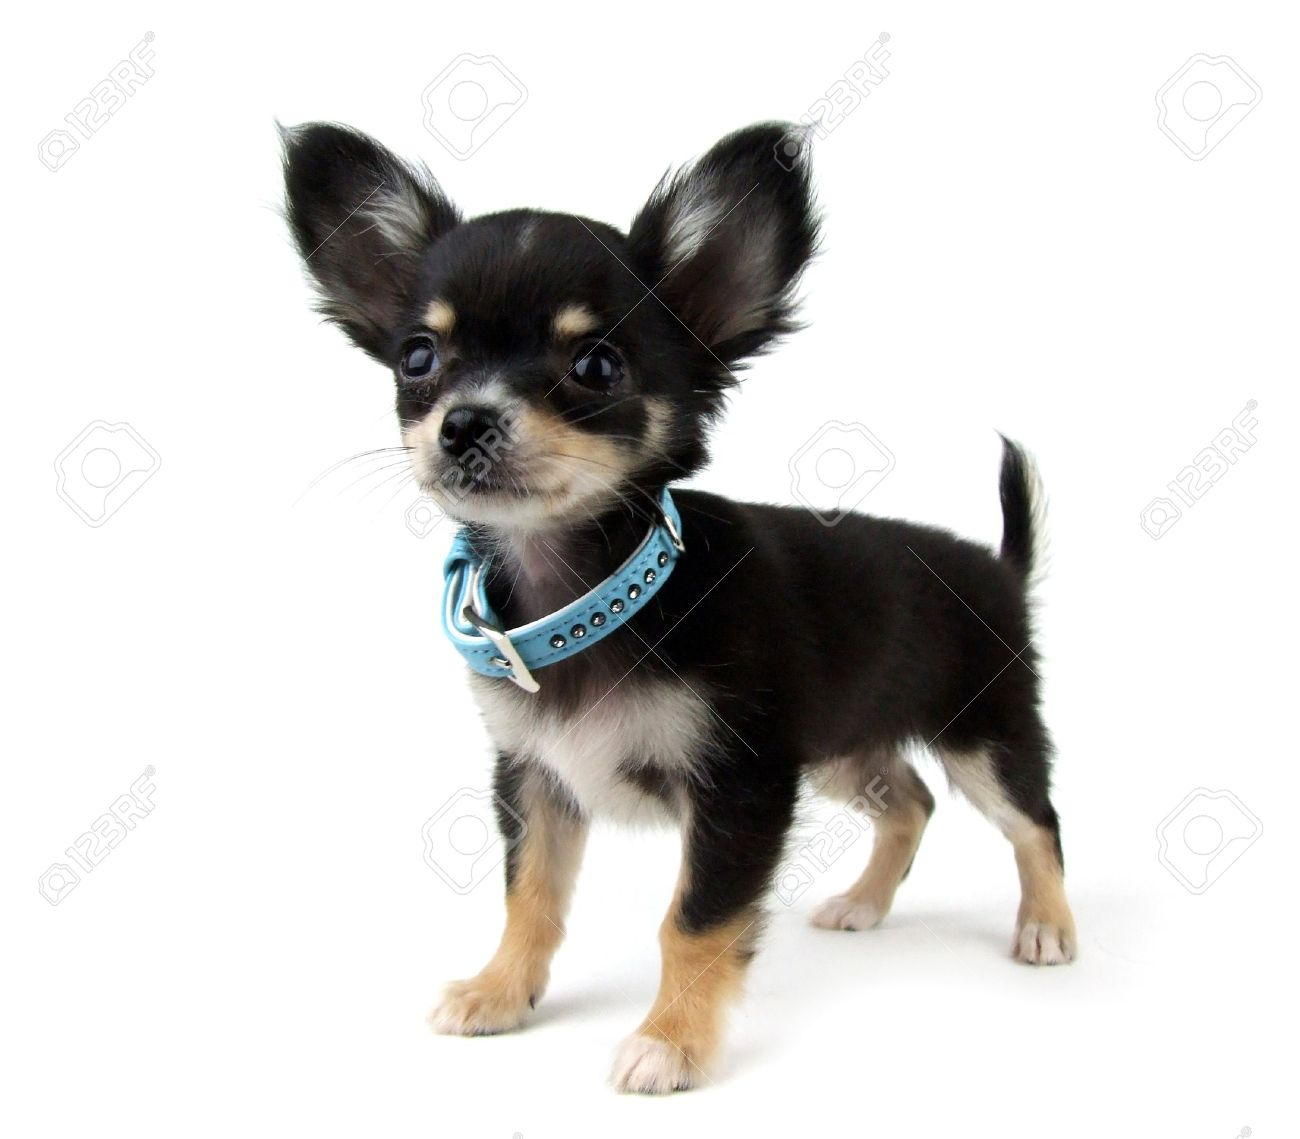 Black And Tan Chihuahua Puppy On White Stock Photo Picture And